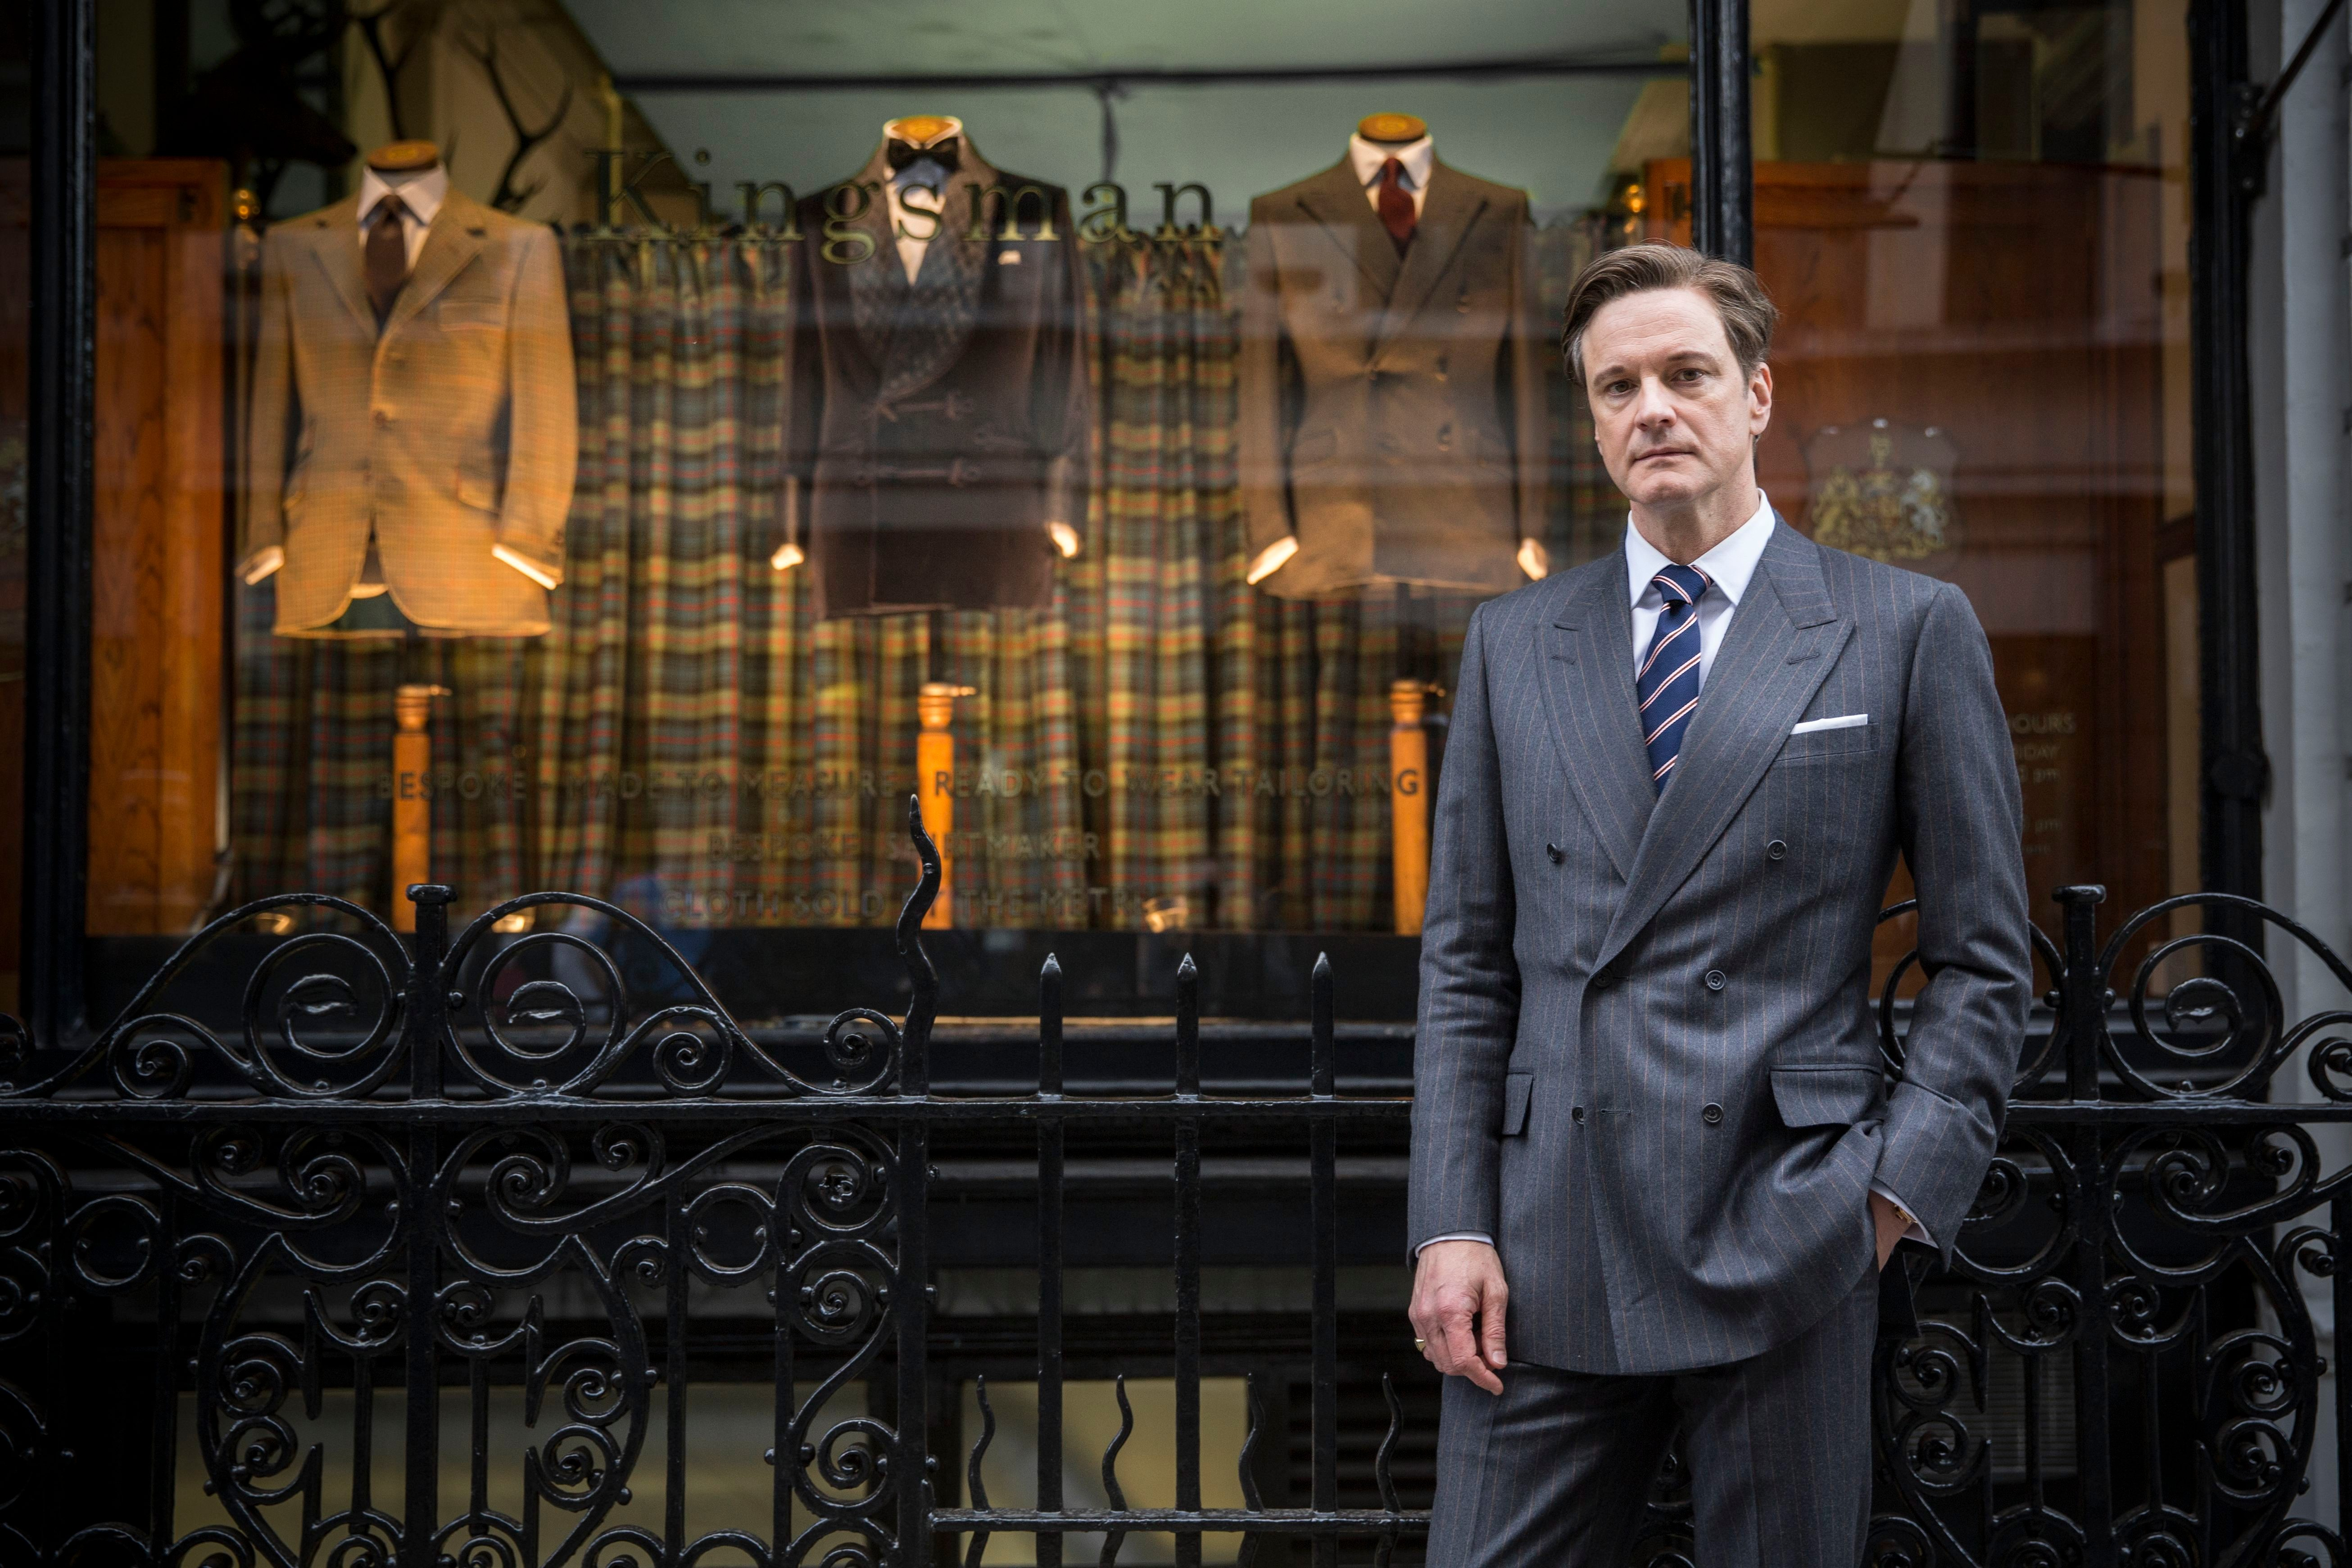 Movie Review - 'Kingsman: The Secret Service'